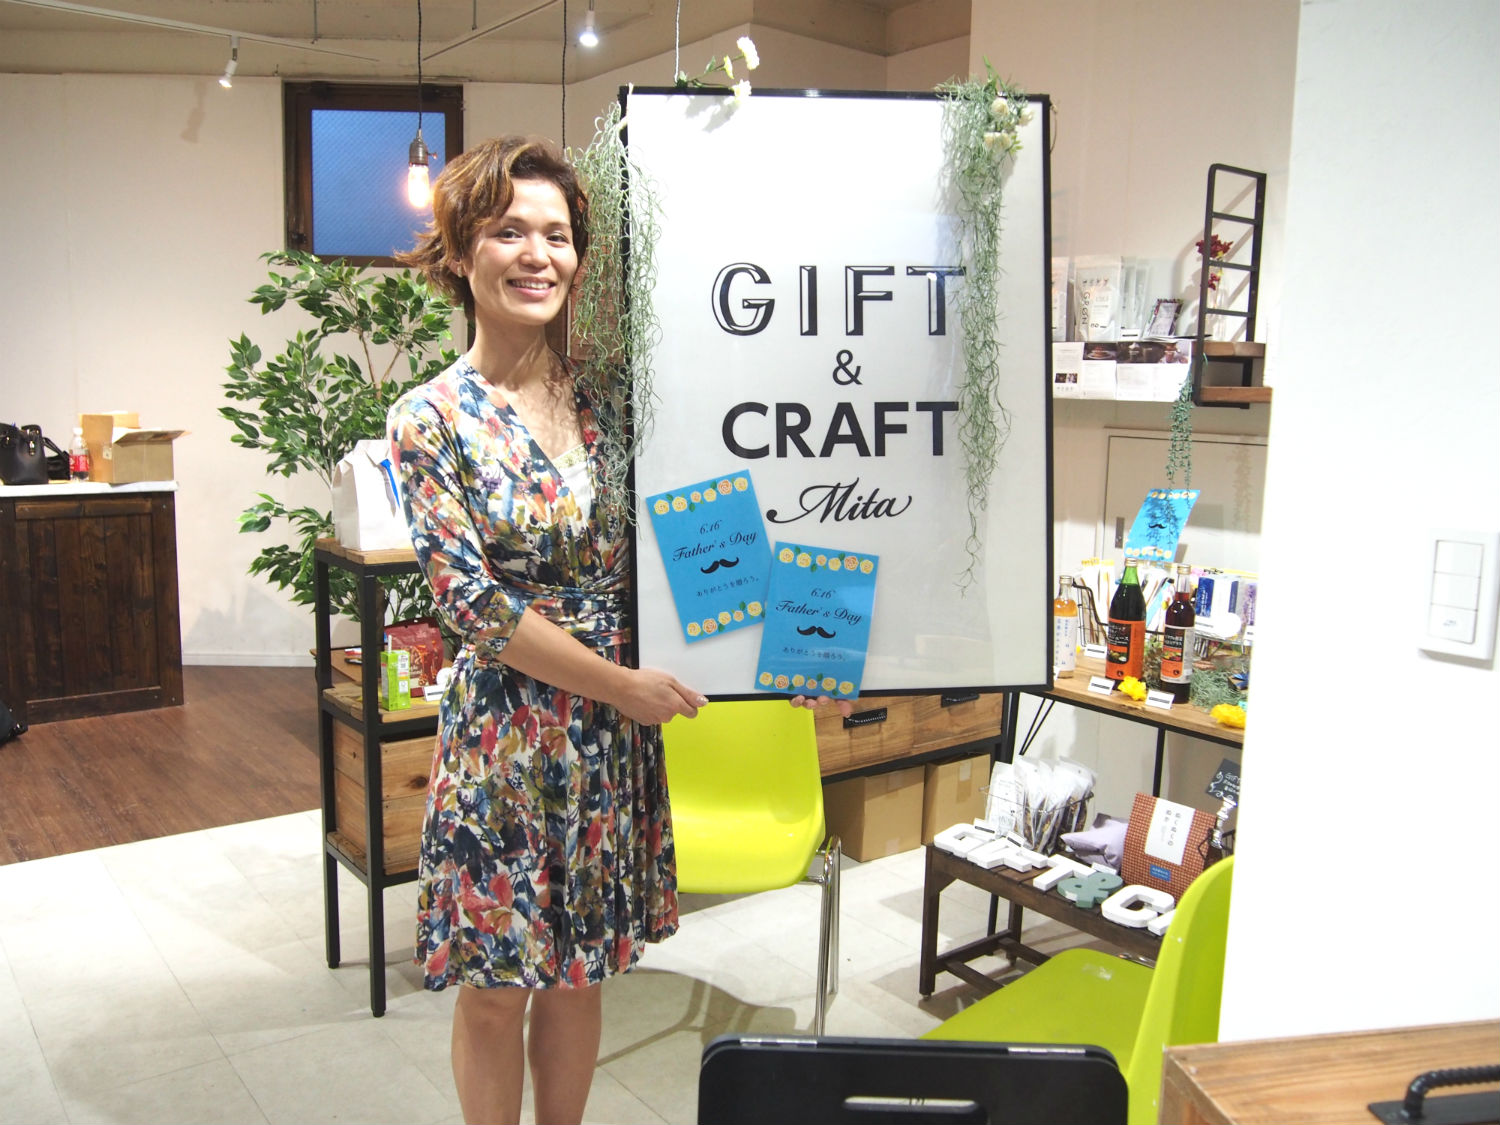 GIFT & CRAFT Mita